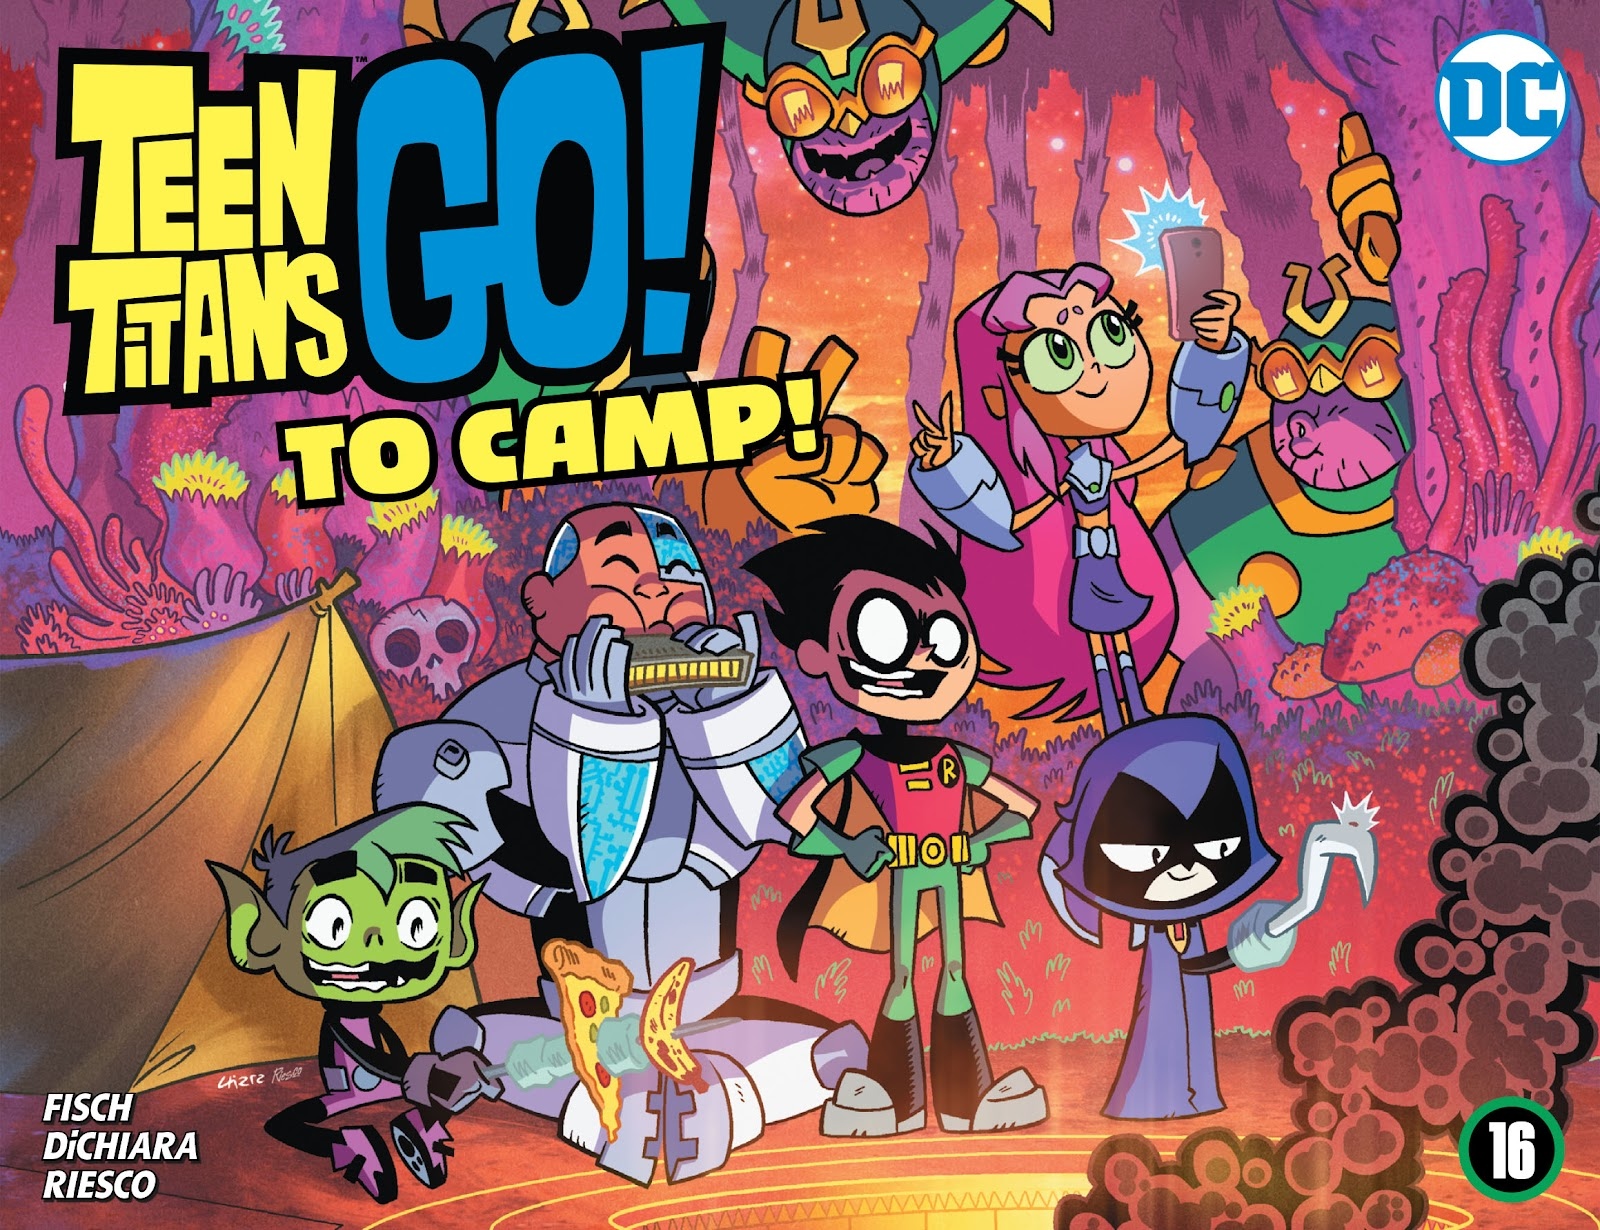 Teen Titans Go! To Camp 16 Page 1